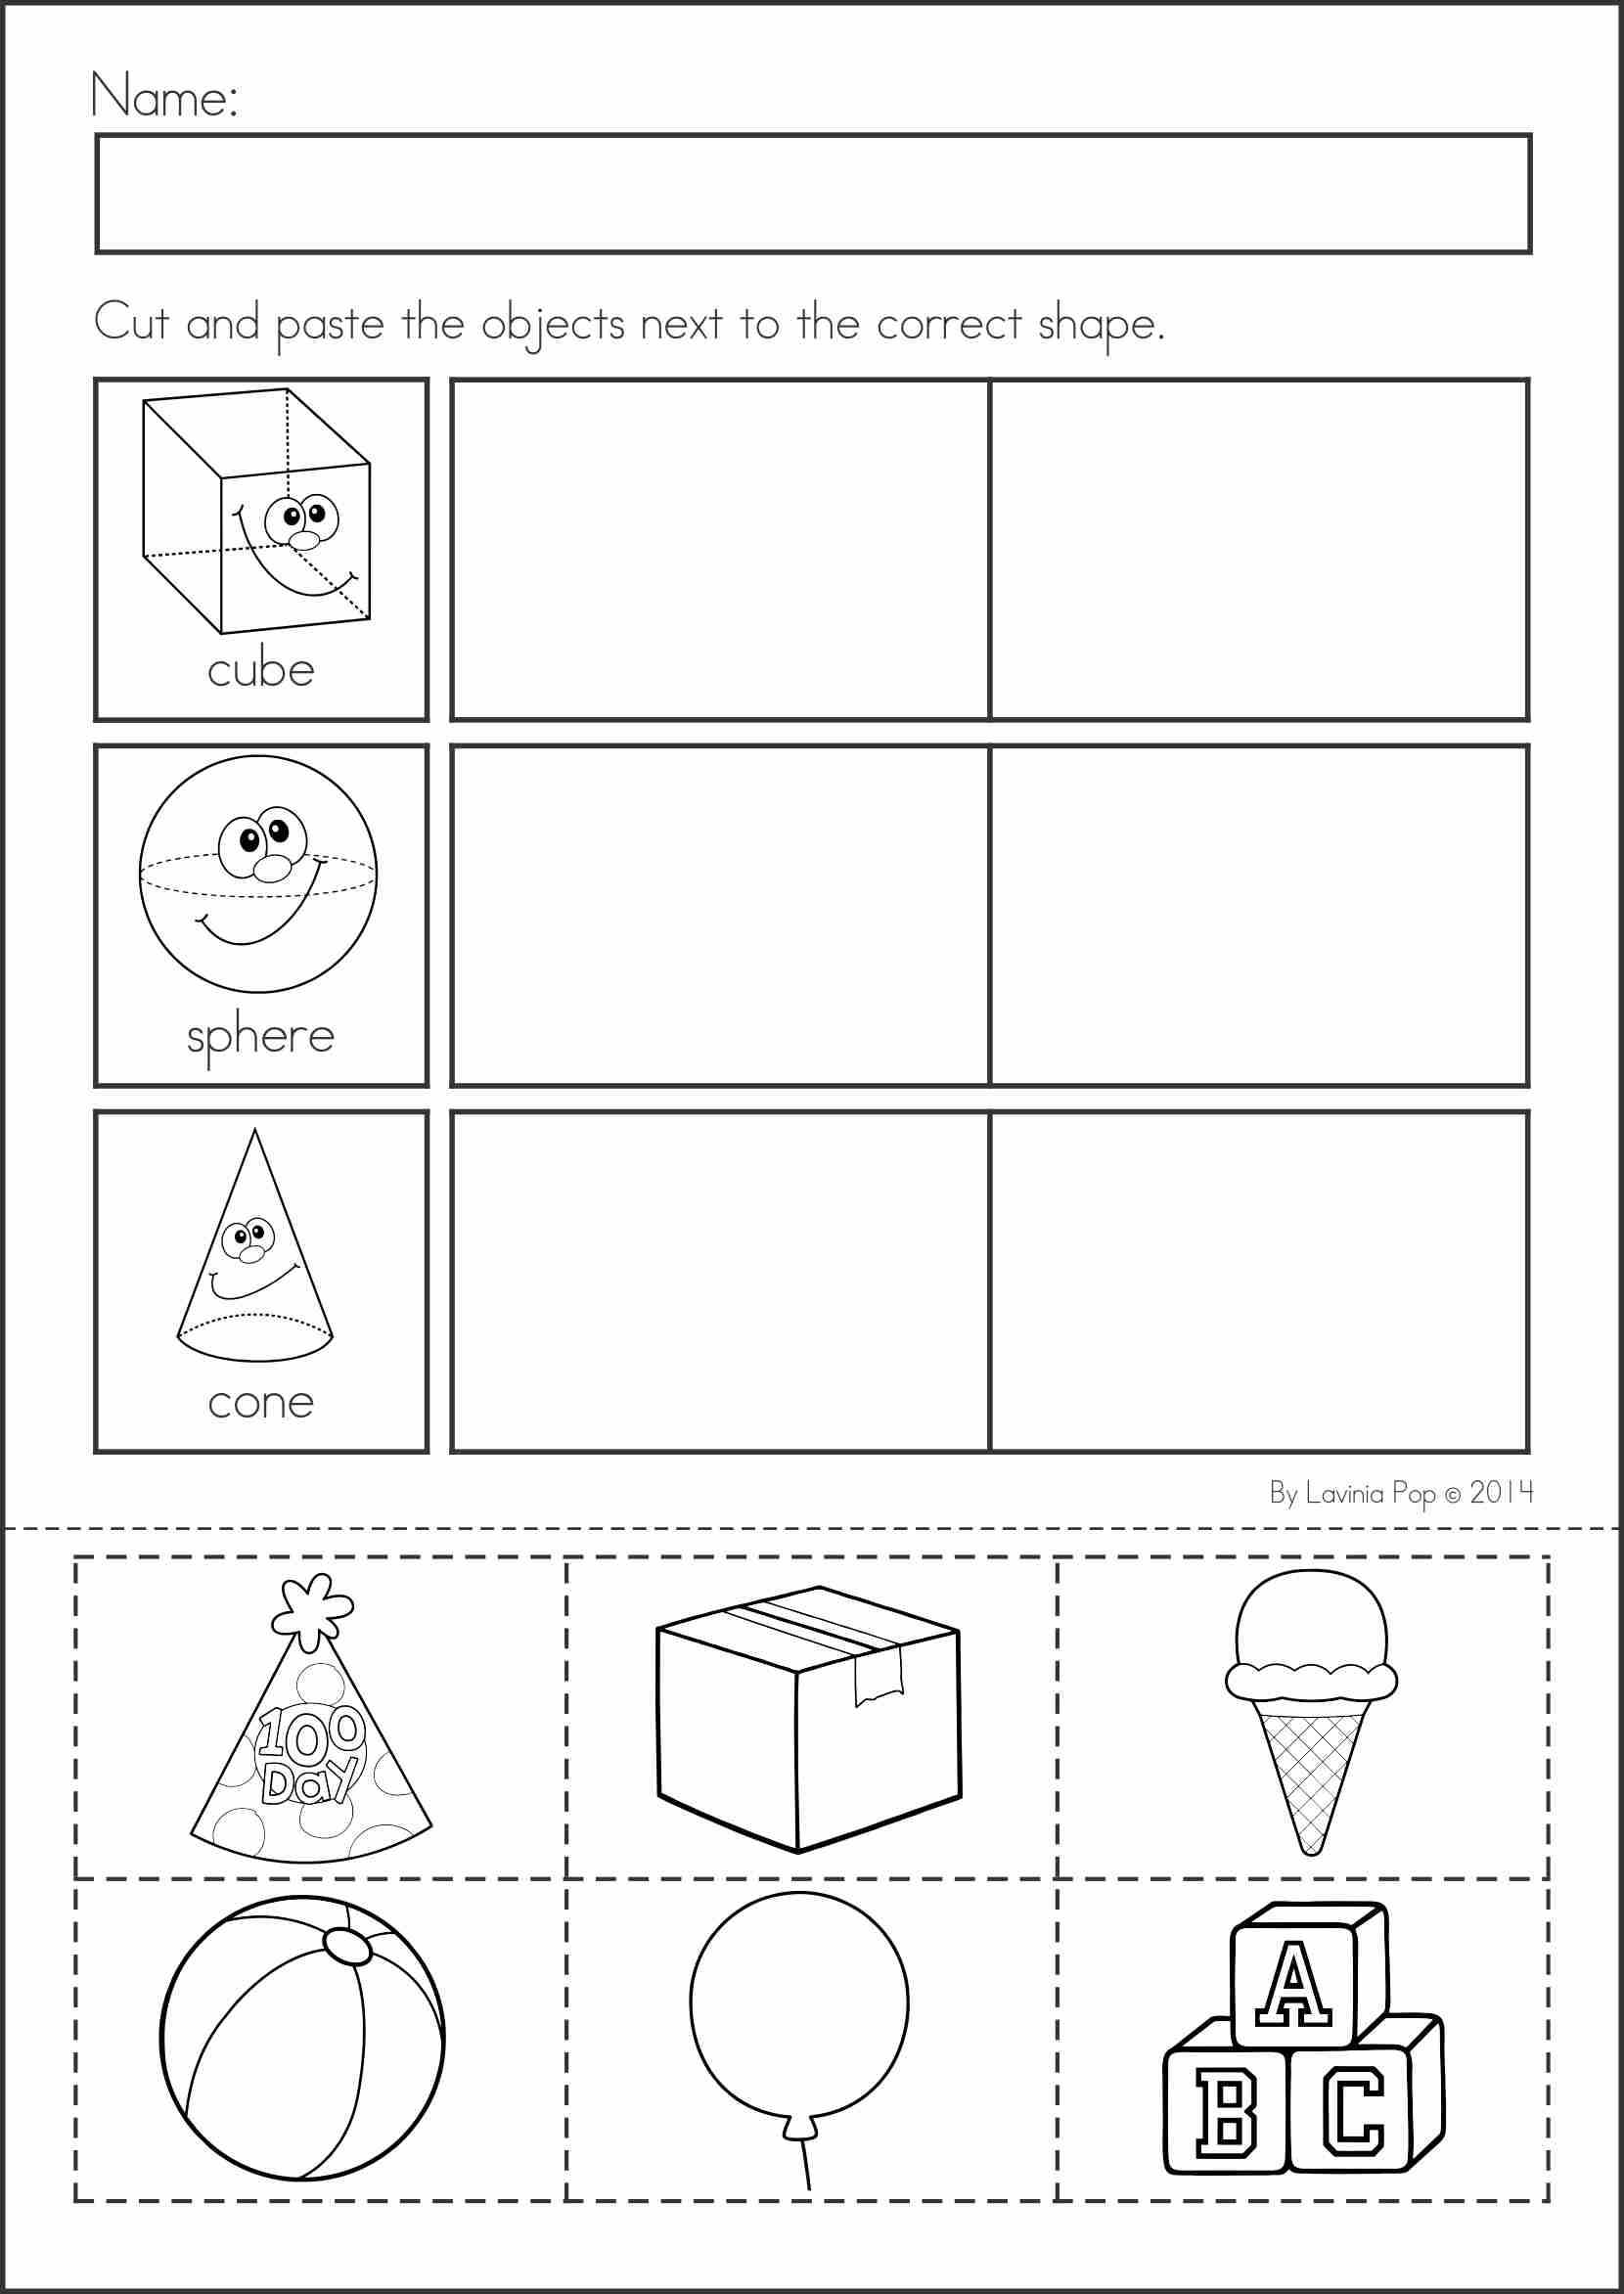 Cut and Paste Worksheets for Kindergarten and Free Printable Shapes Worksheets for Kindergartenol Gifolers